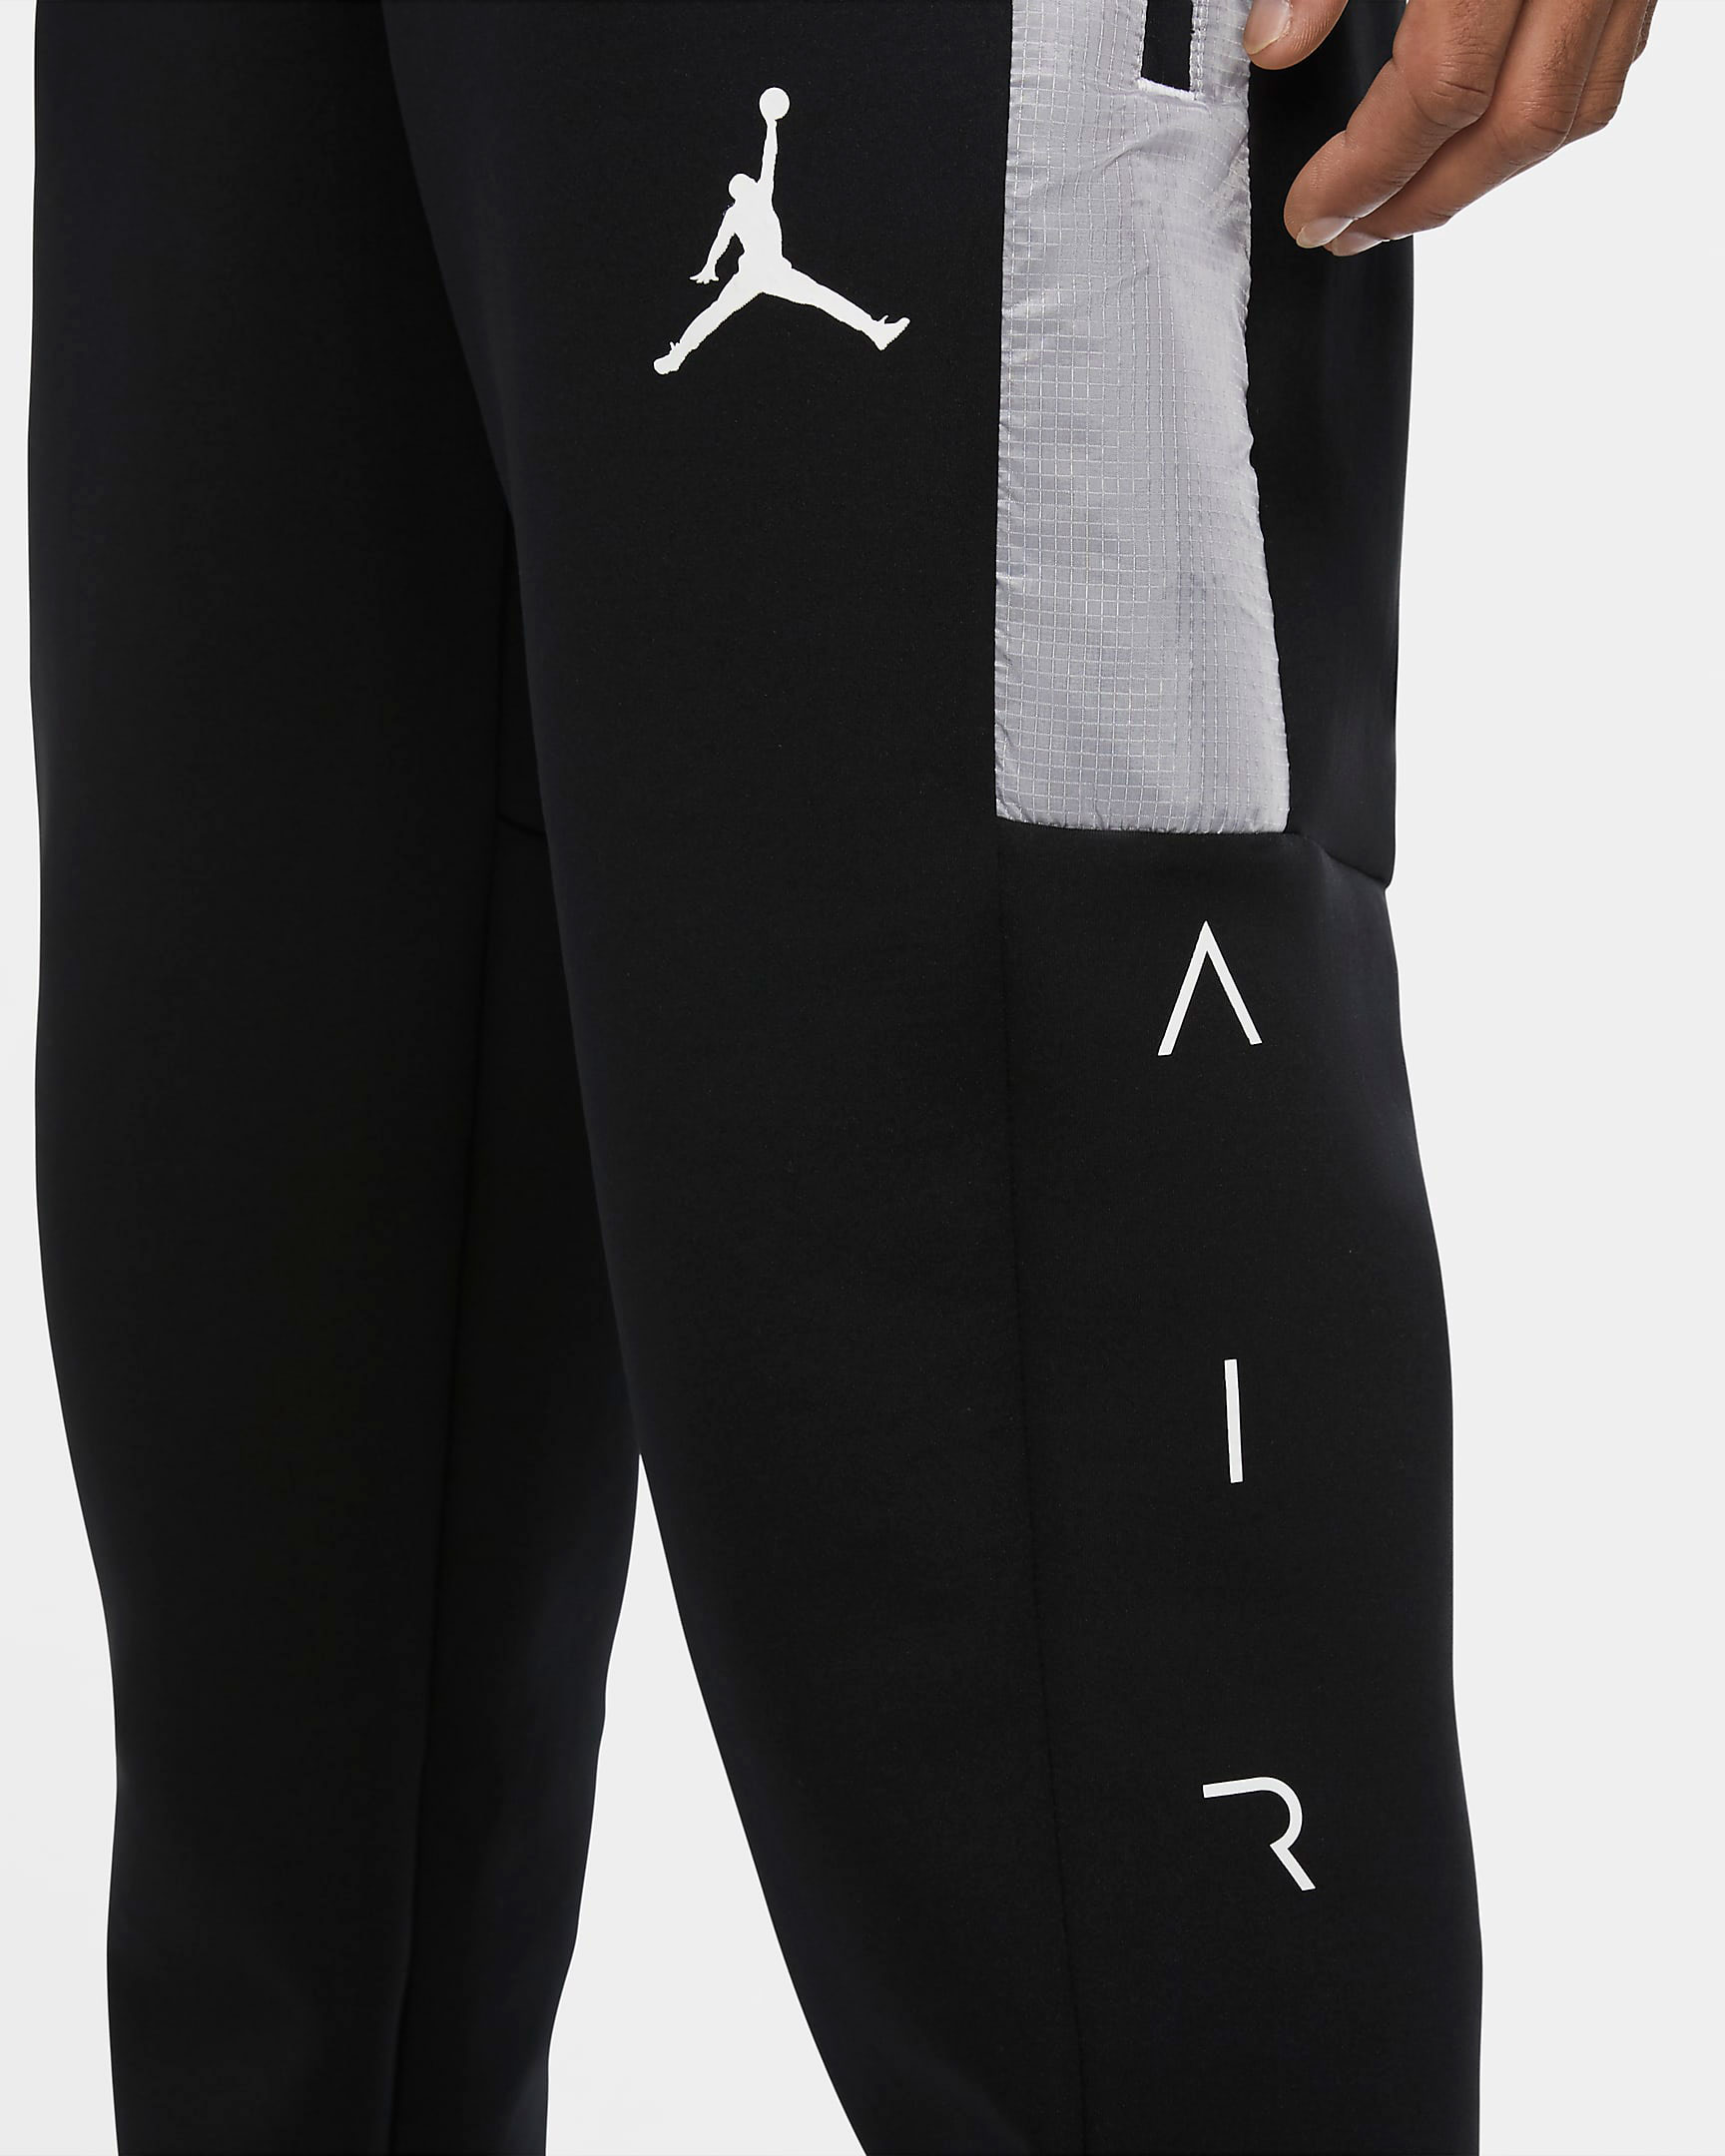 air-jordan-11-jubilee-black-white-jordan-pants-2